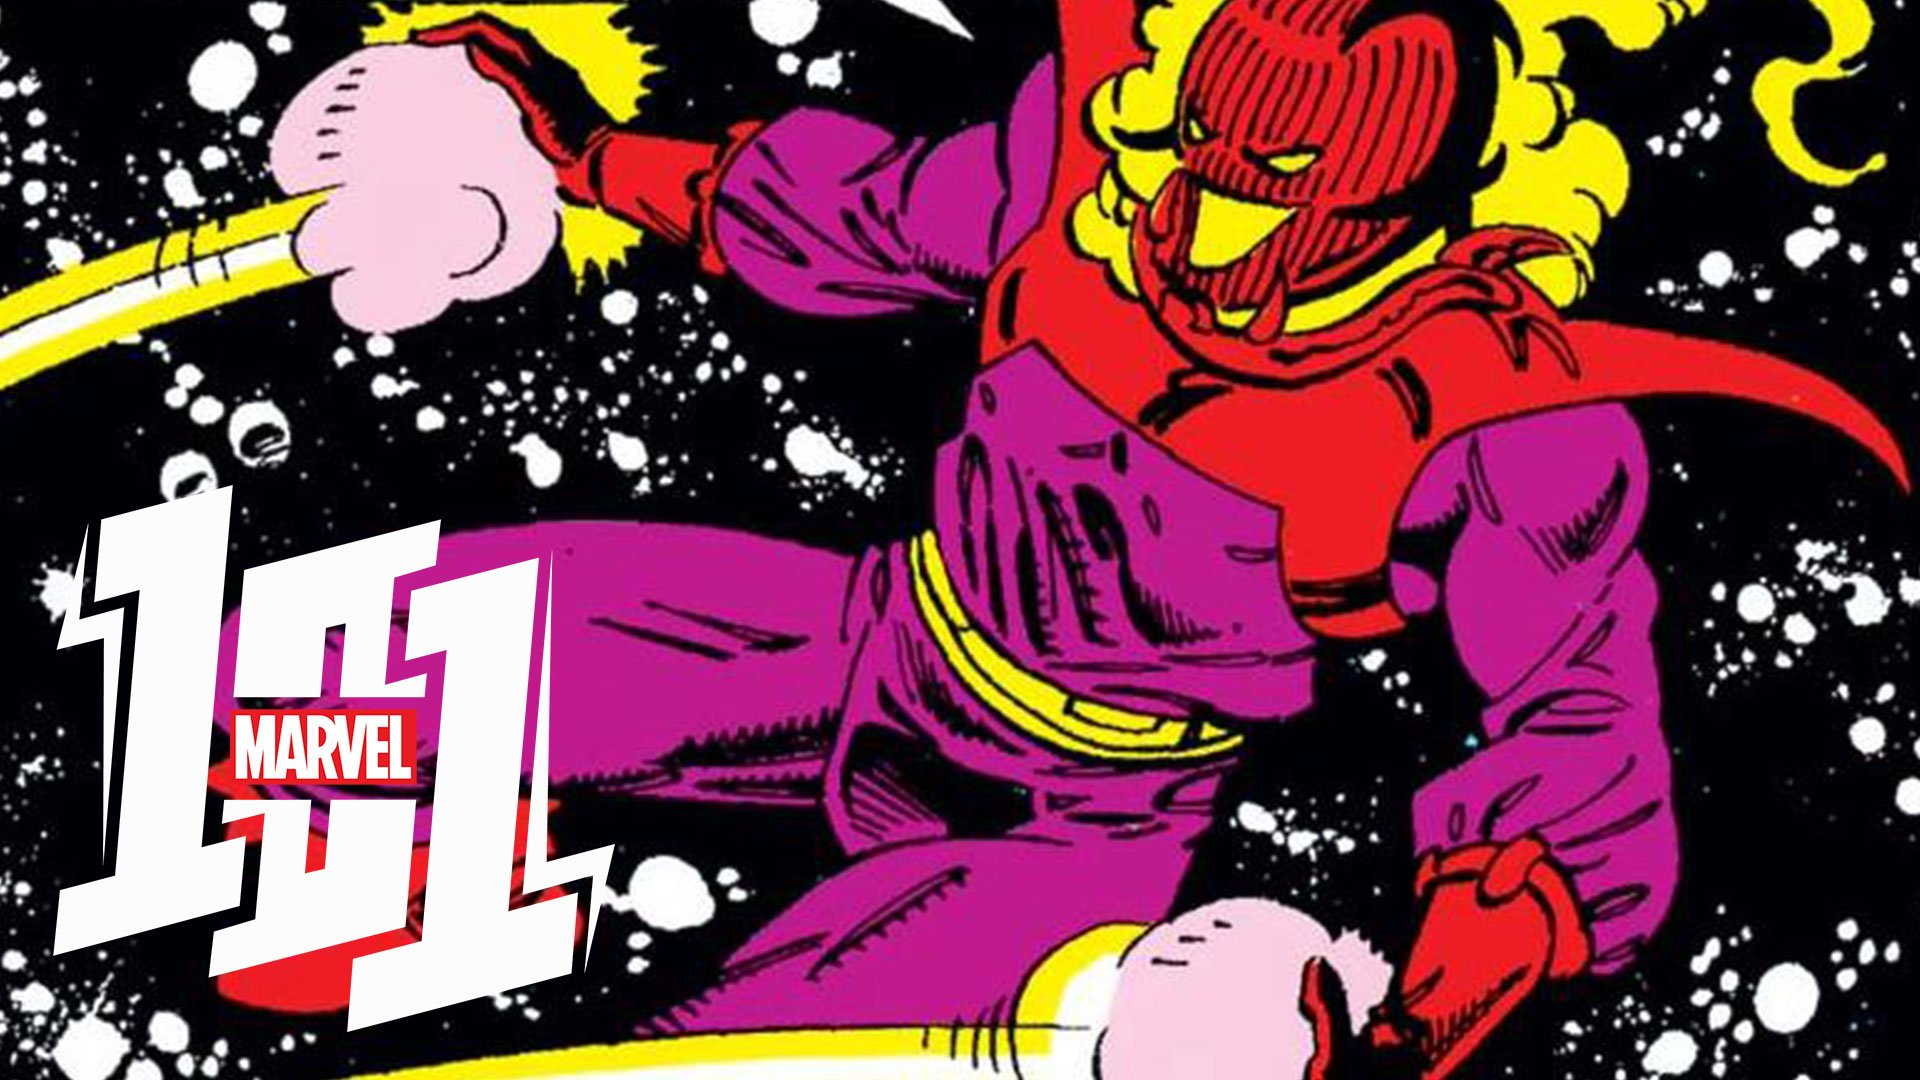 This week on #Marvel101, discover how Dormammu is one of the greatest forces of evil in the universe! https://t.co/F2NTp77Zyg